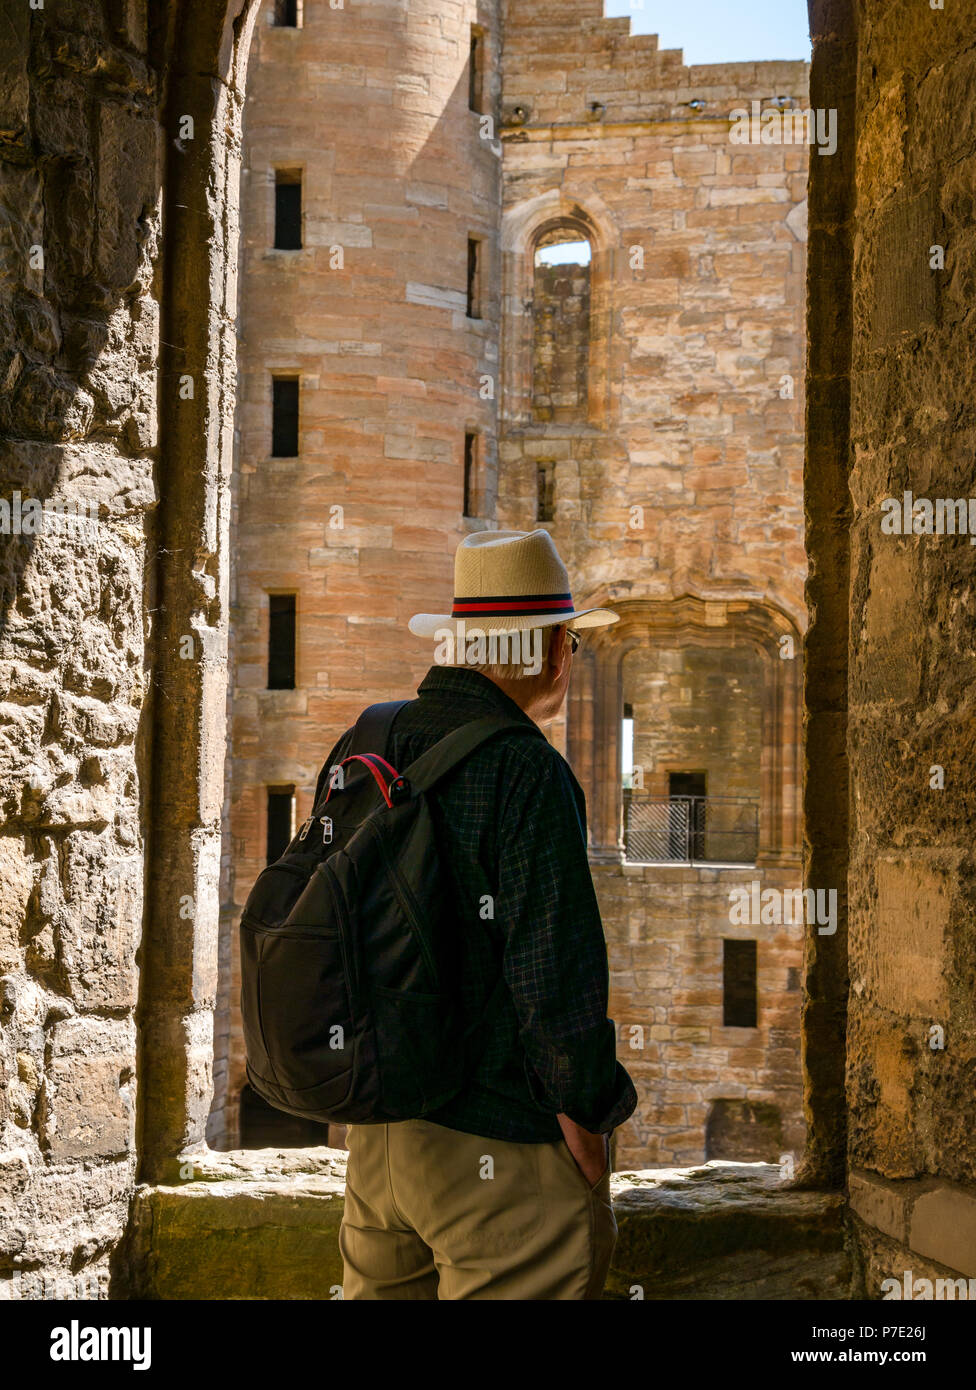 man-with-backpack-wearing-panama-hat-sta